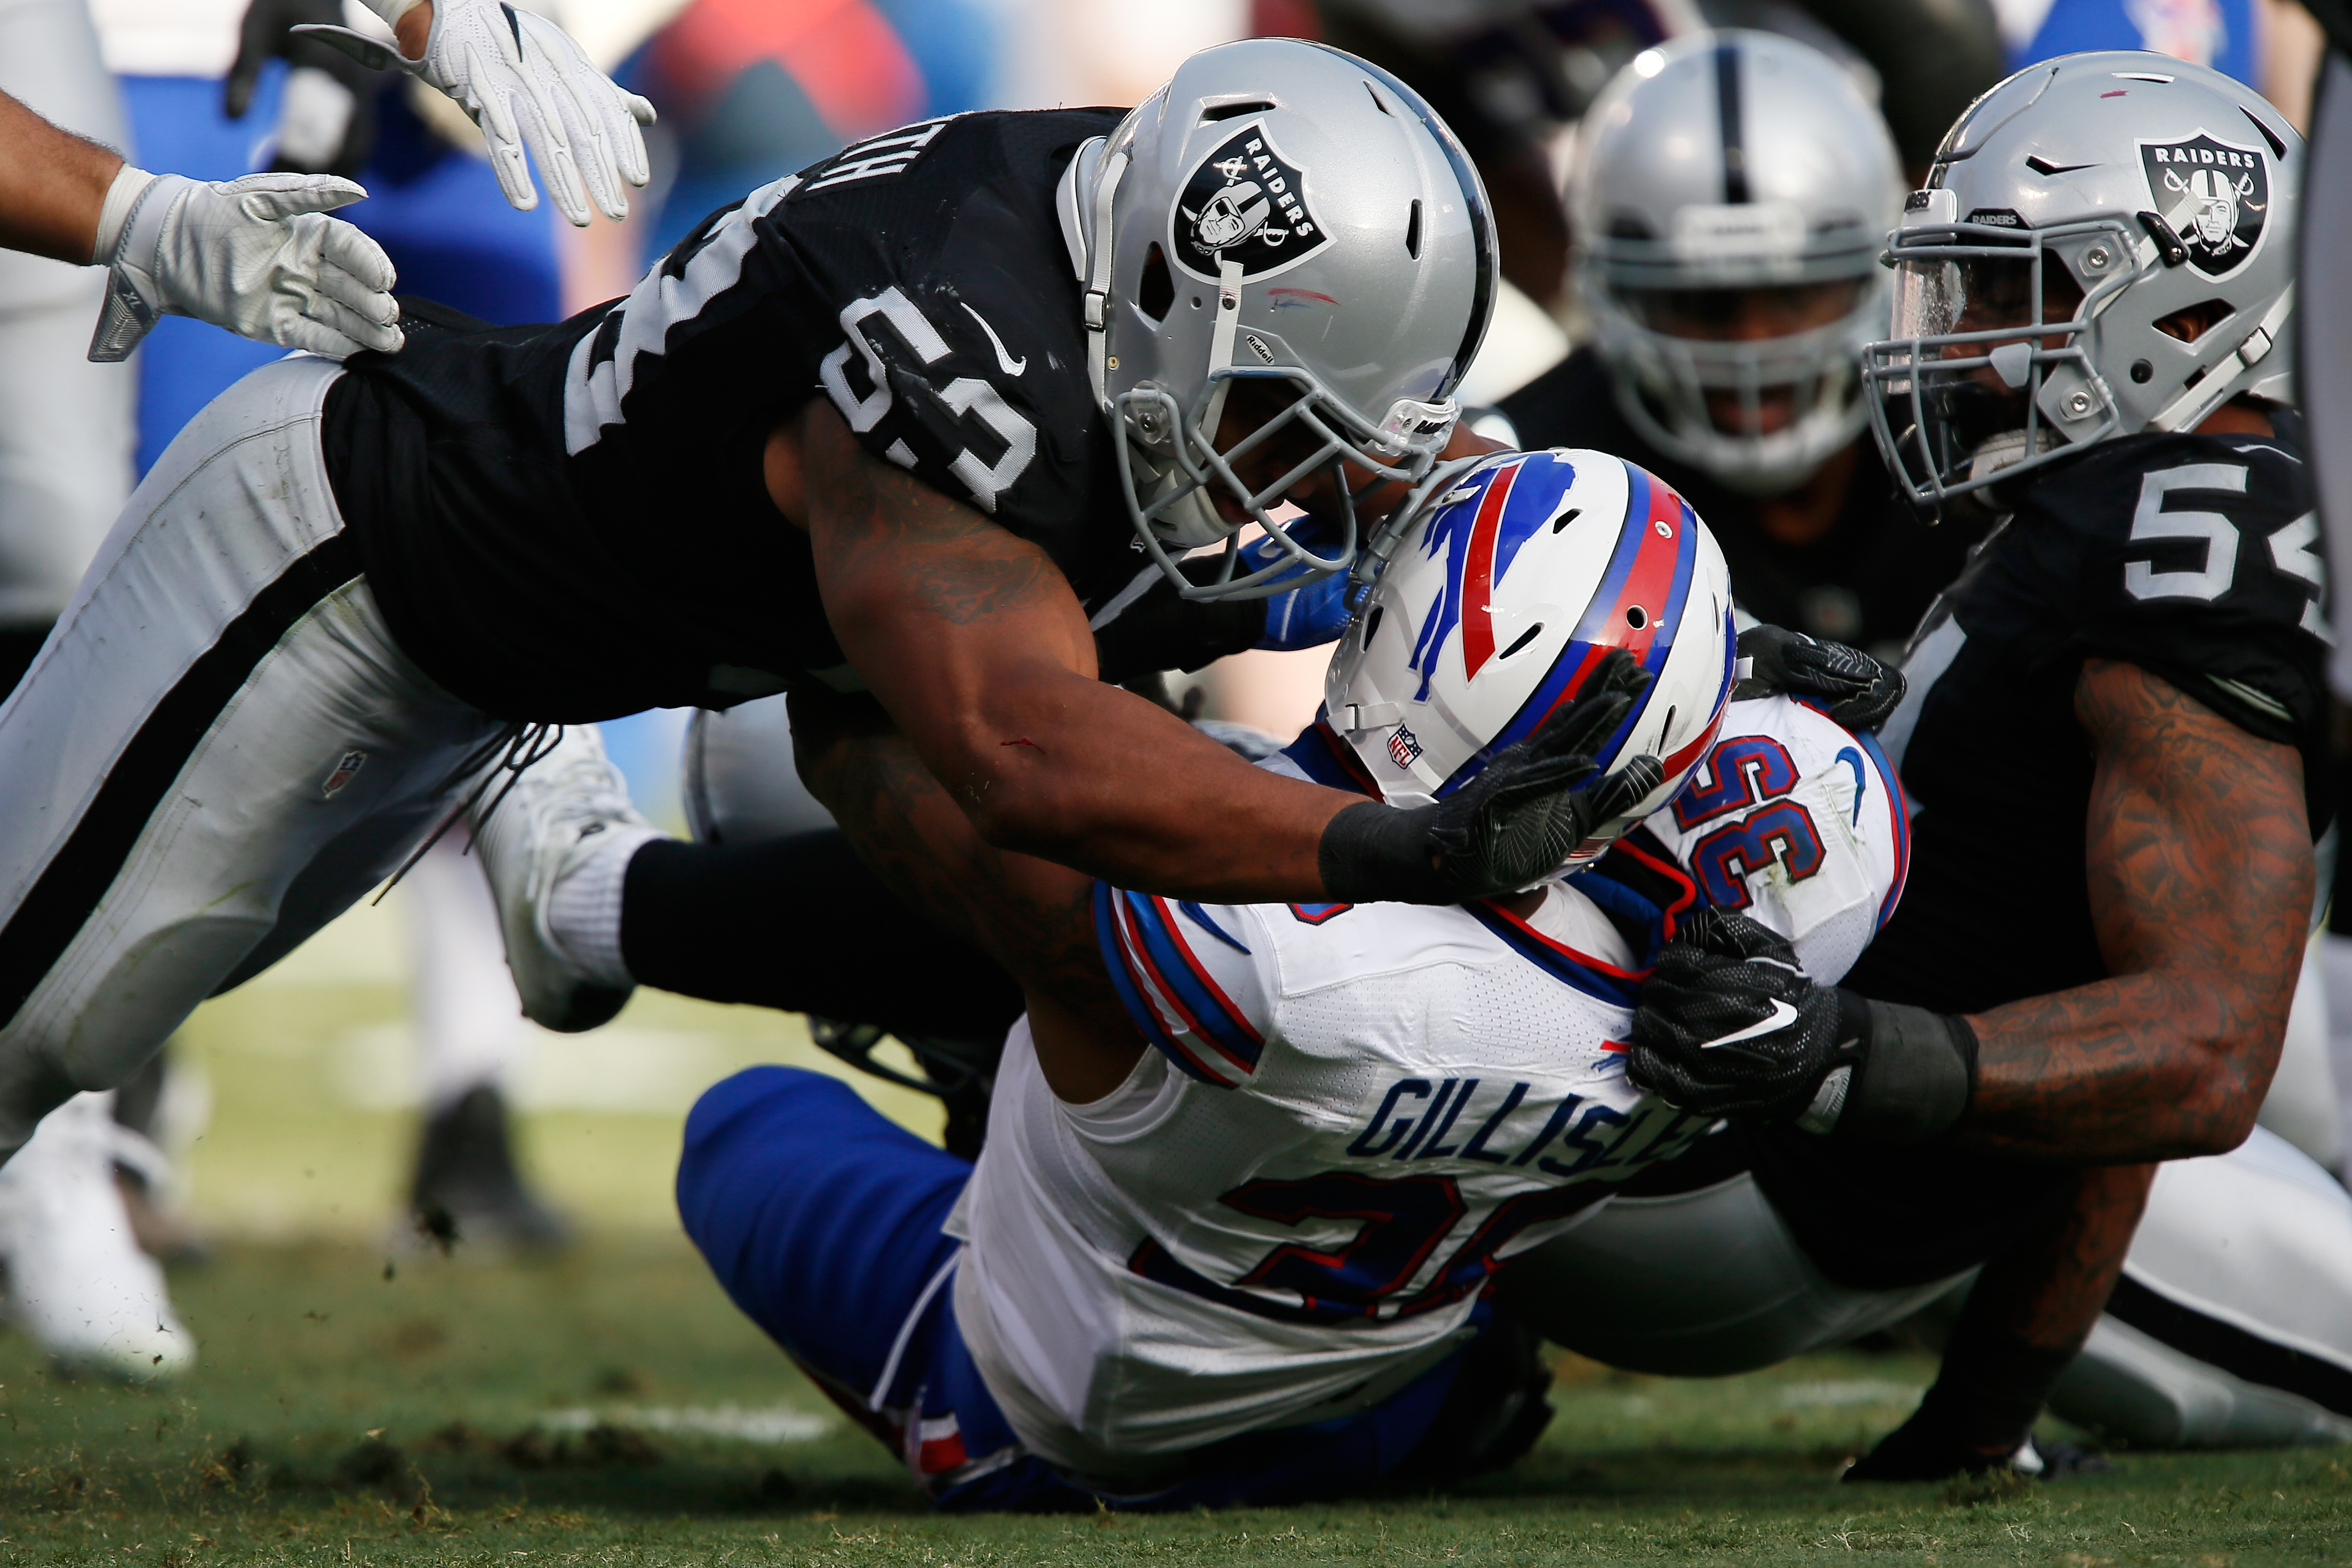 Mike Gillislee of the Bills is hit by Malcolm Smith (53). (Getty Images)